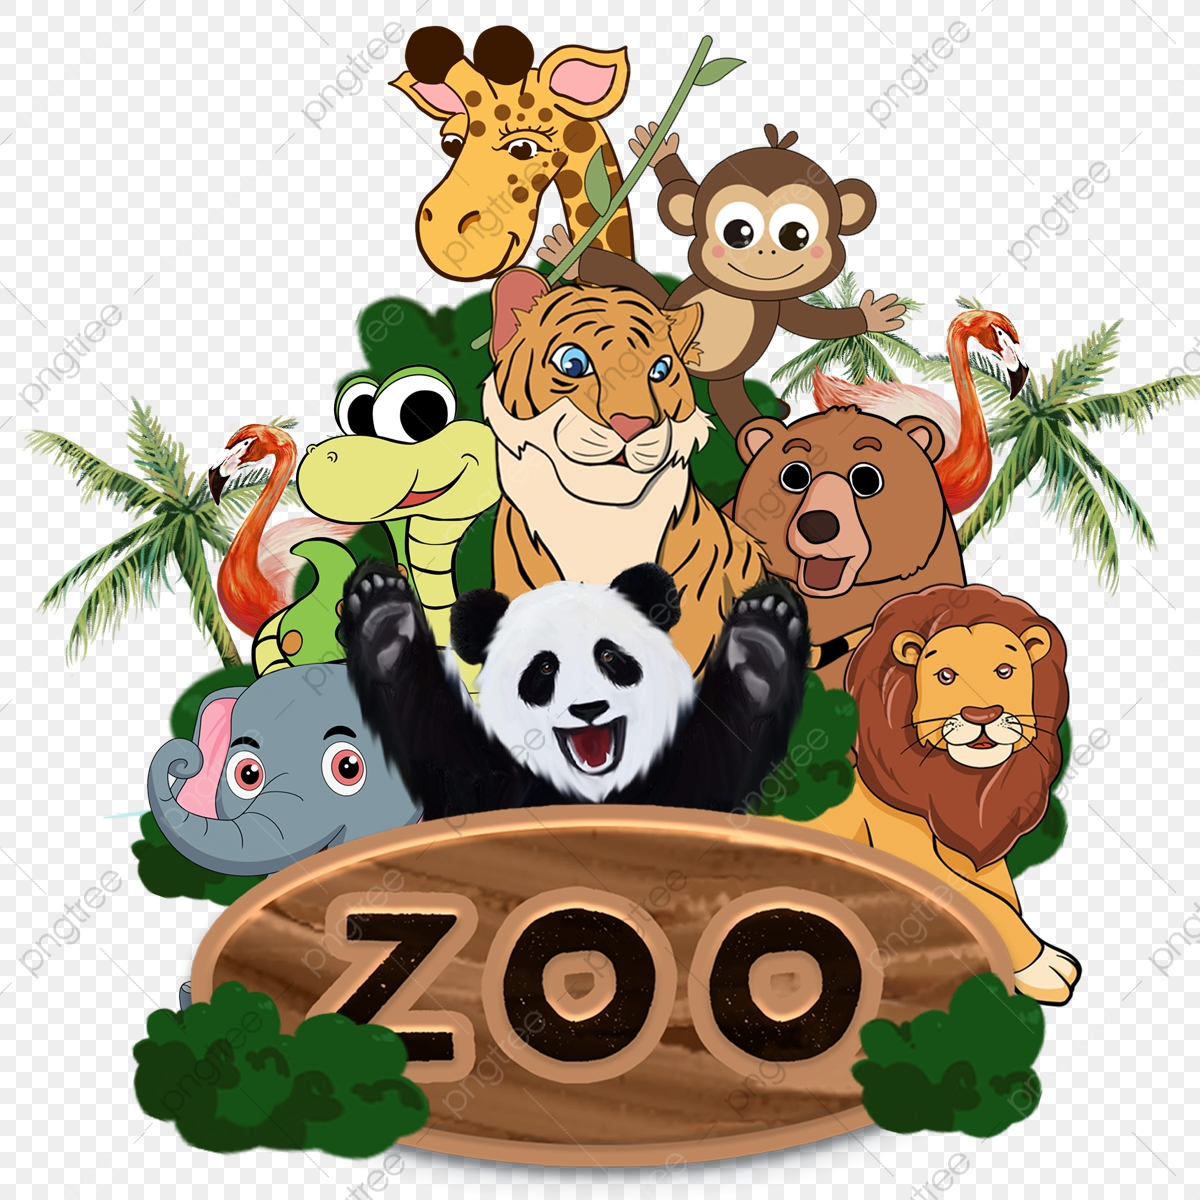 Zoo Clipart Png Images Vector And Psd Files Free Download On Pngtree